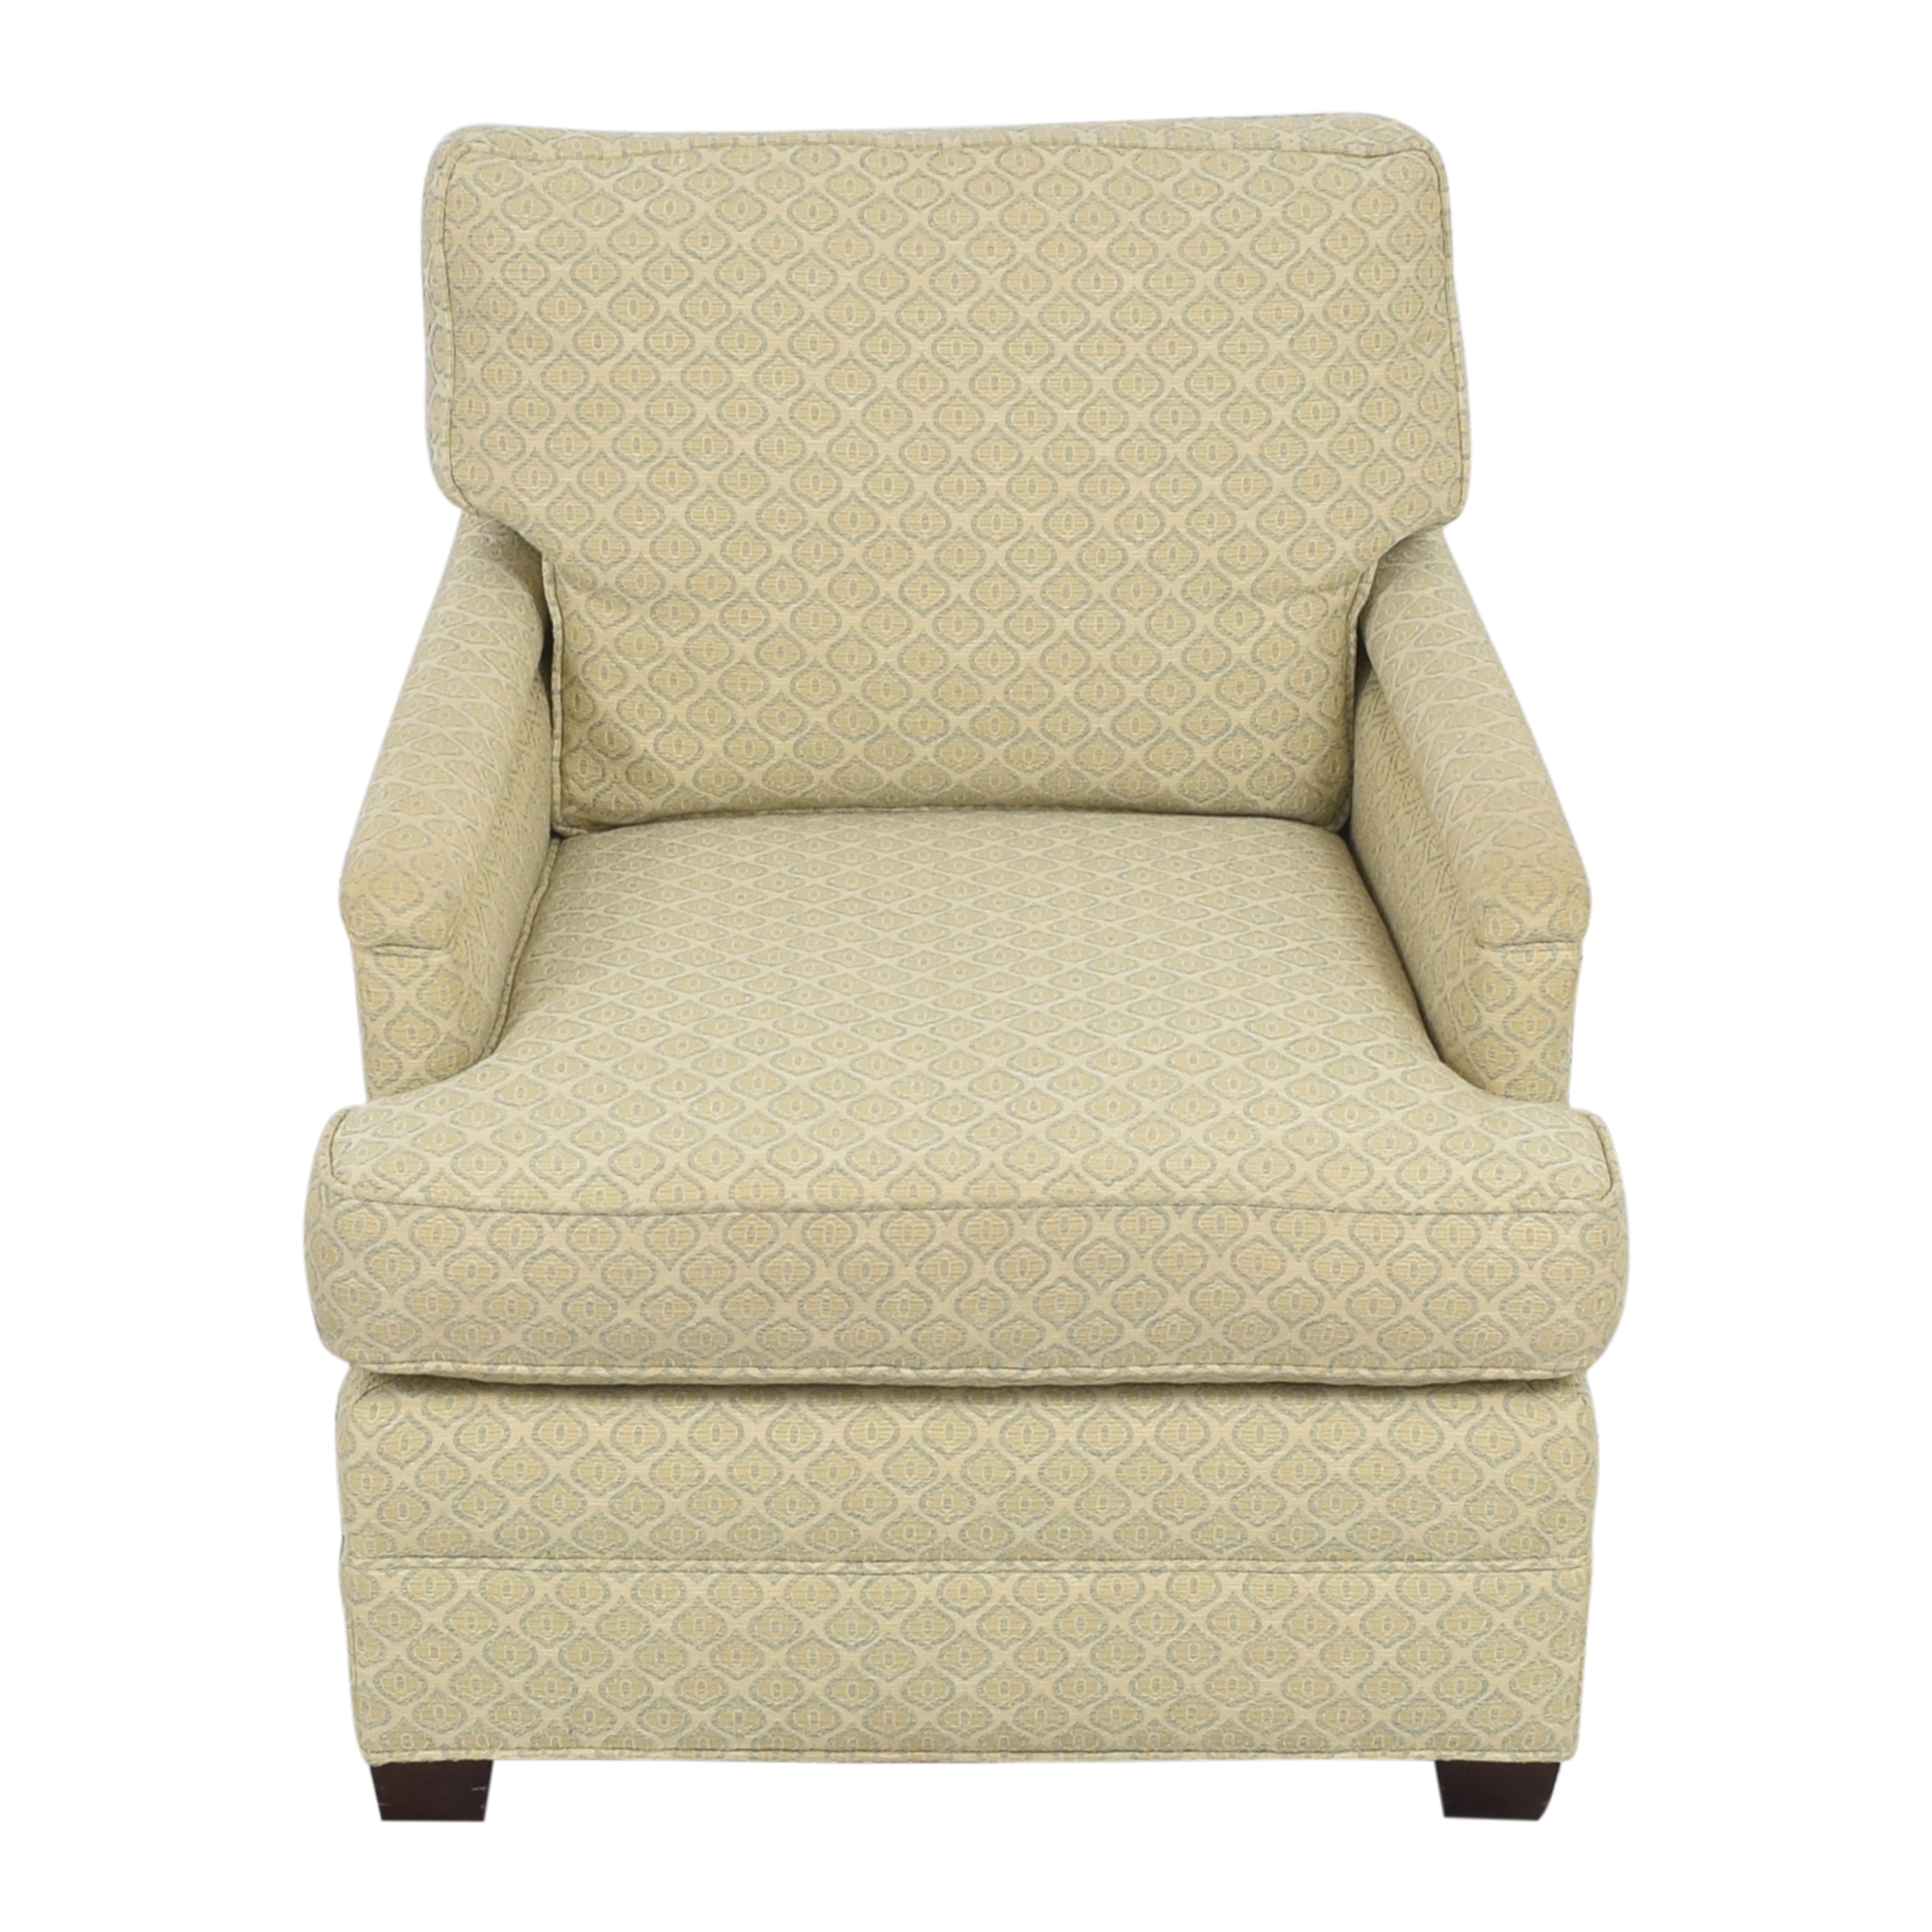 Lee Industries Lee Industries Club Chair ma